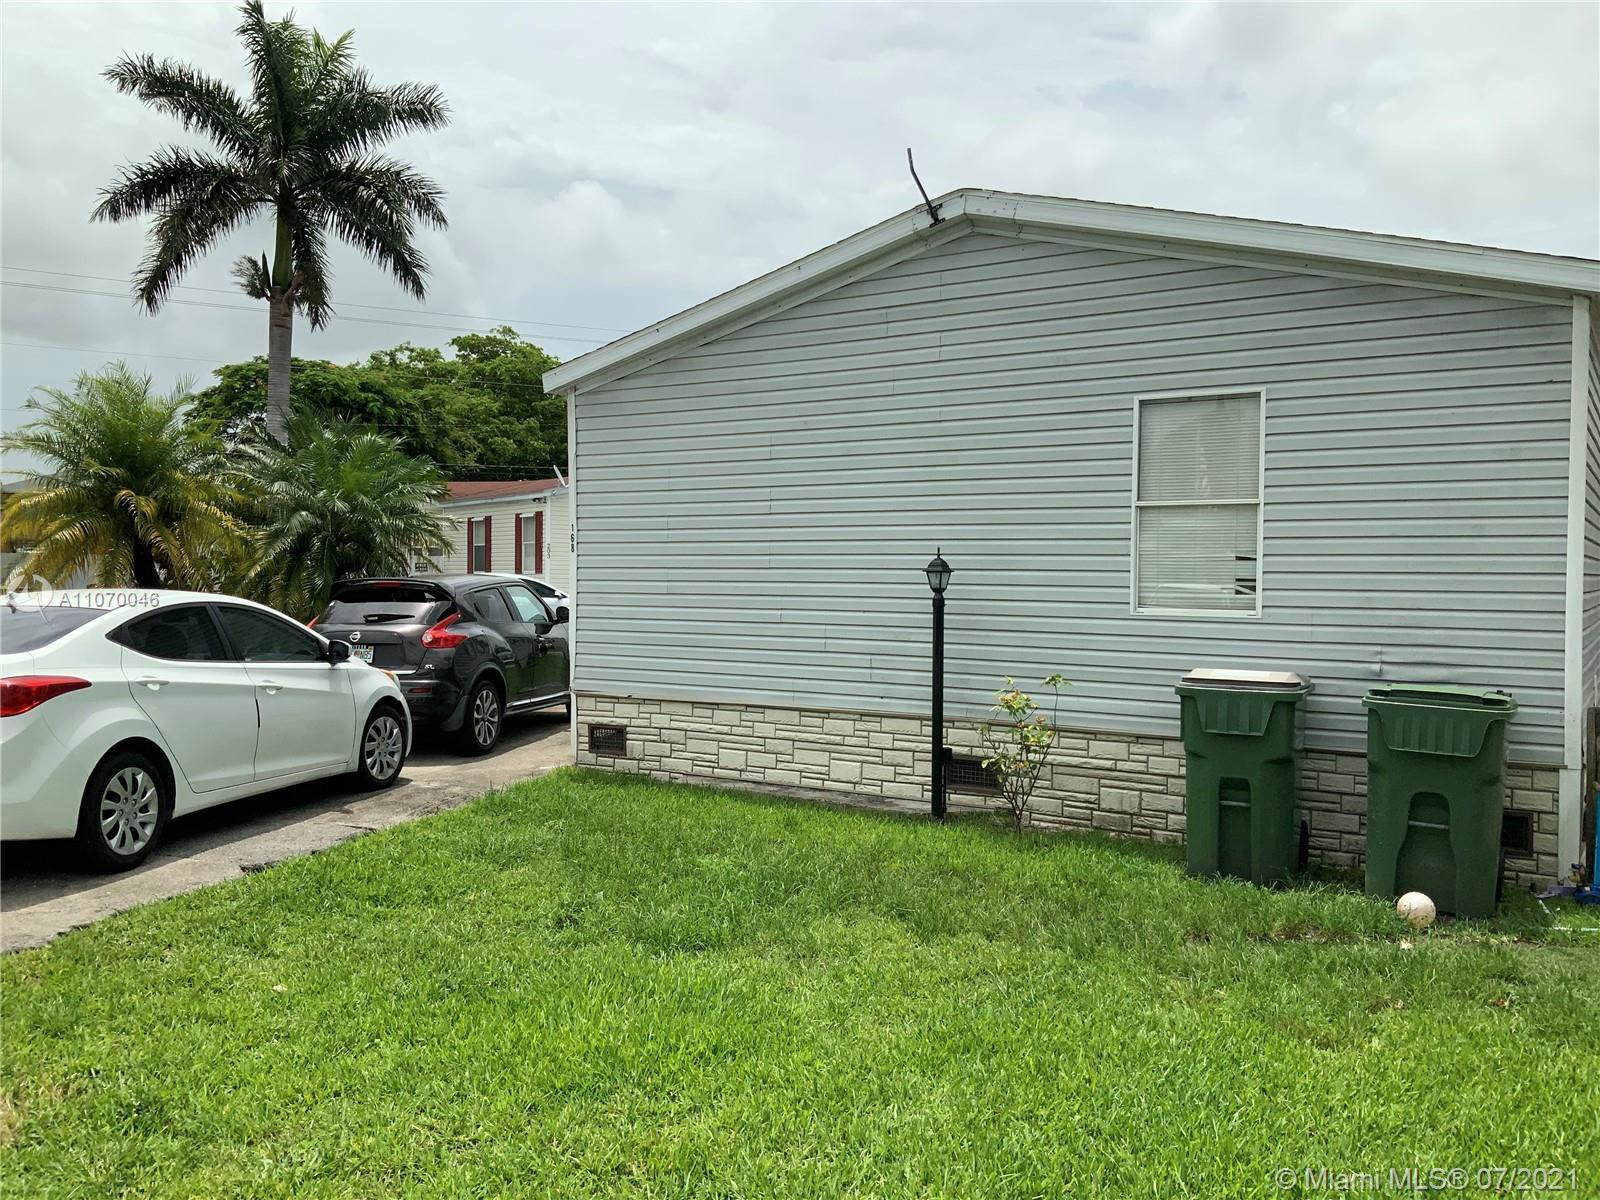 Another Great Opportunity to own your Single Family Mobile home with the land included. Need TLC and cleaning Inside Bring your offers...Lot 168